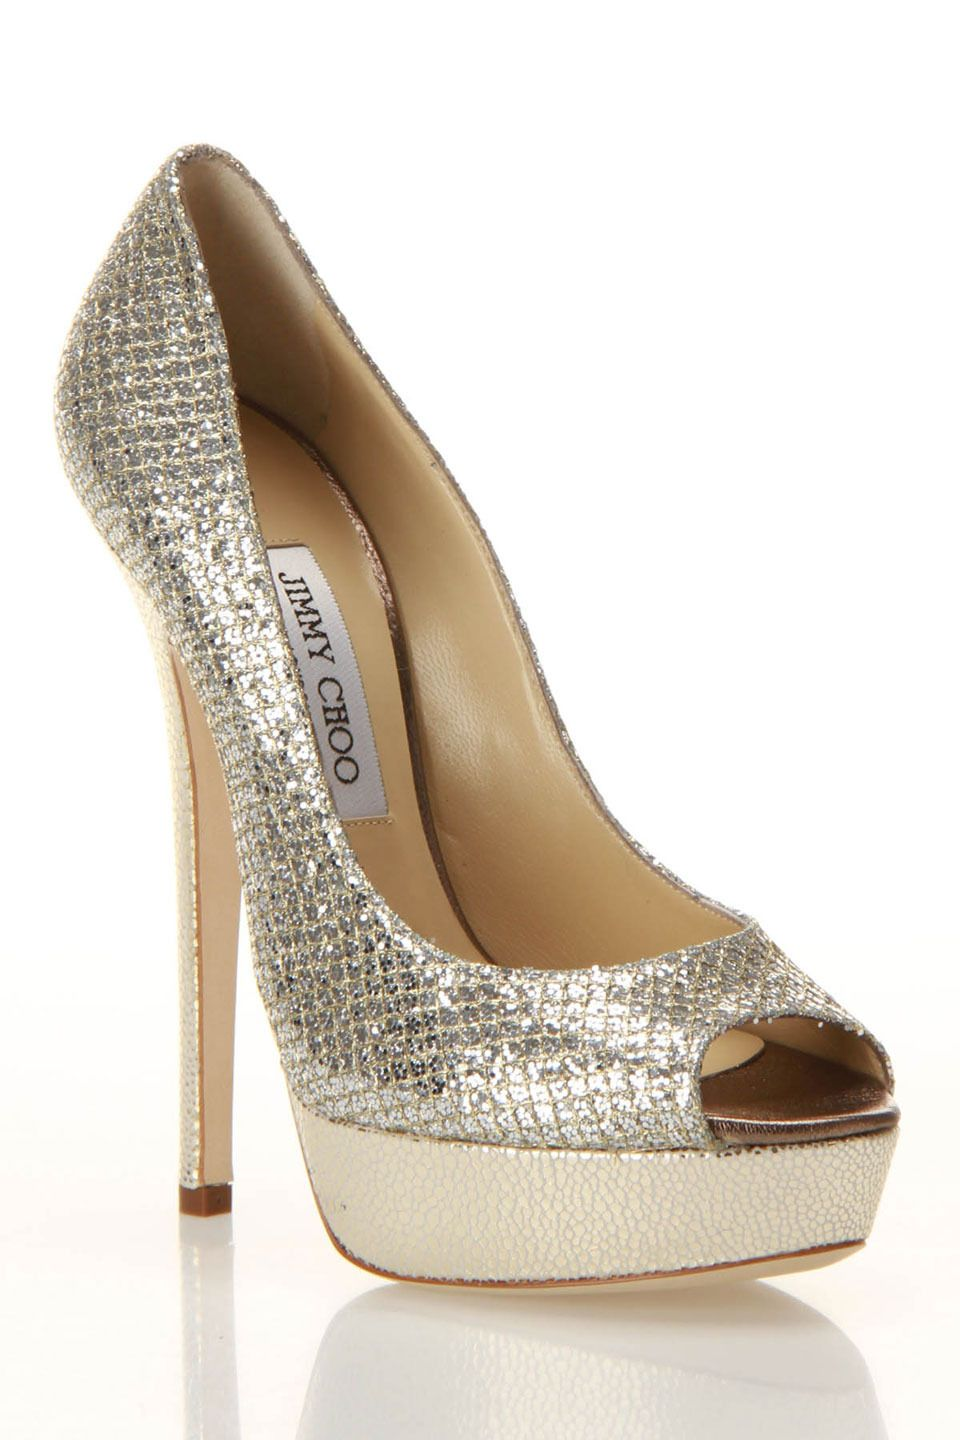 0b7f986bd55 Jimmy Choo Vibe Pumps In Champagne  http   www.shoeniverse.info